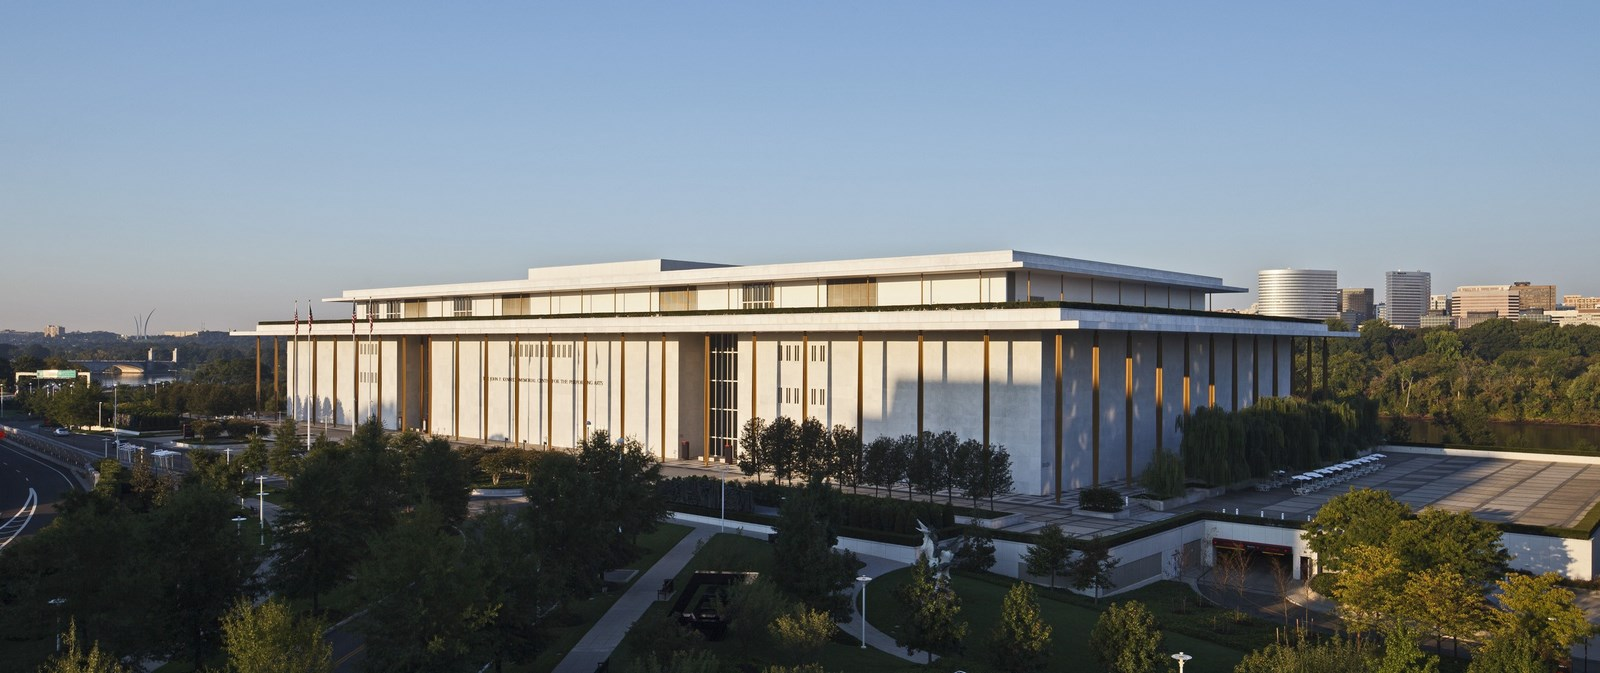 John F. Kennedy Center for Performing Arts - Sheet2